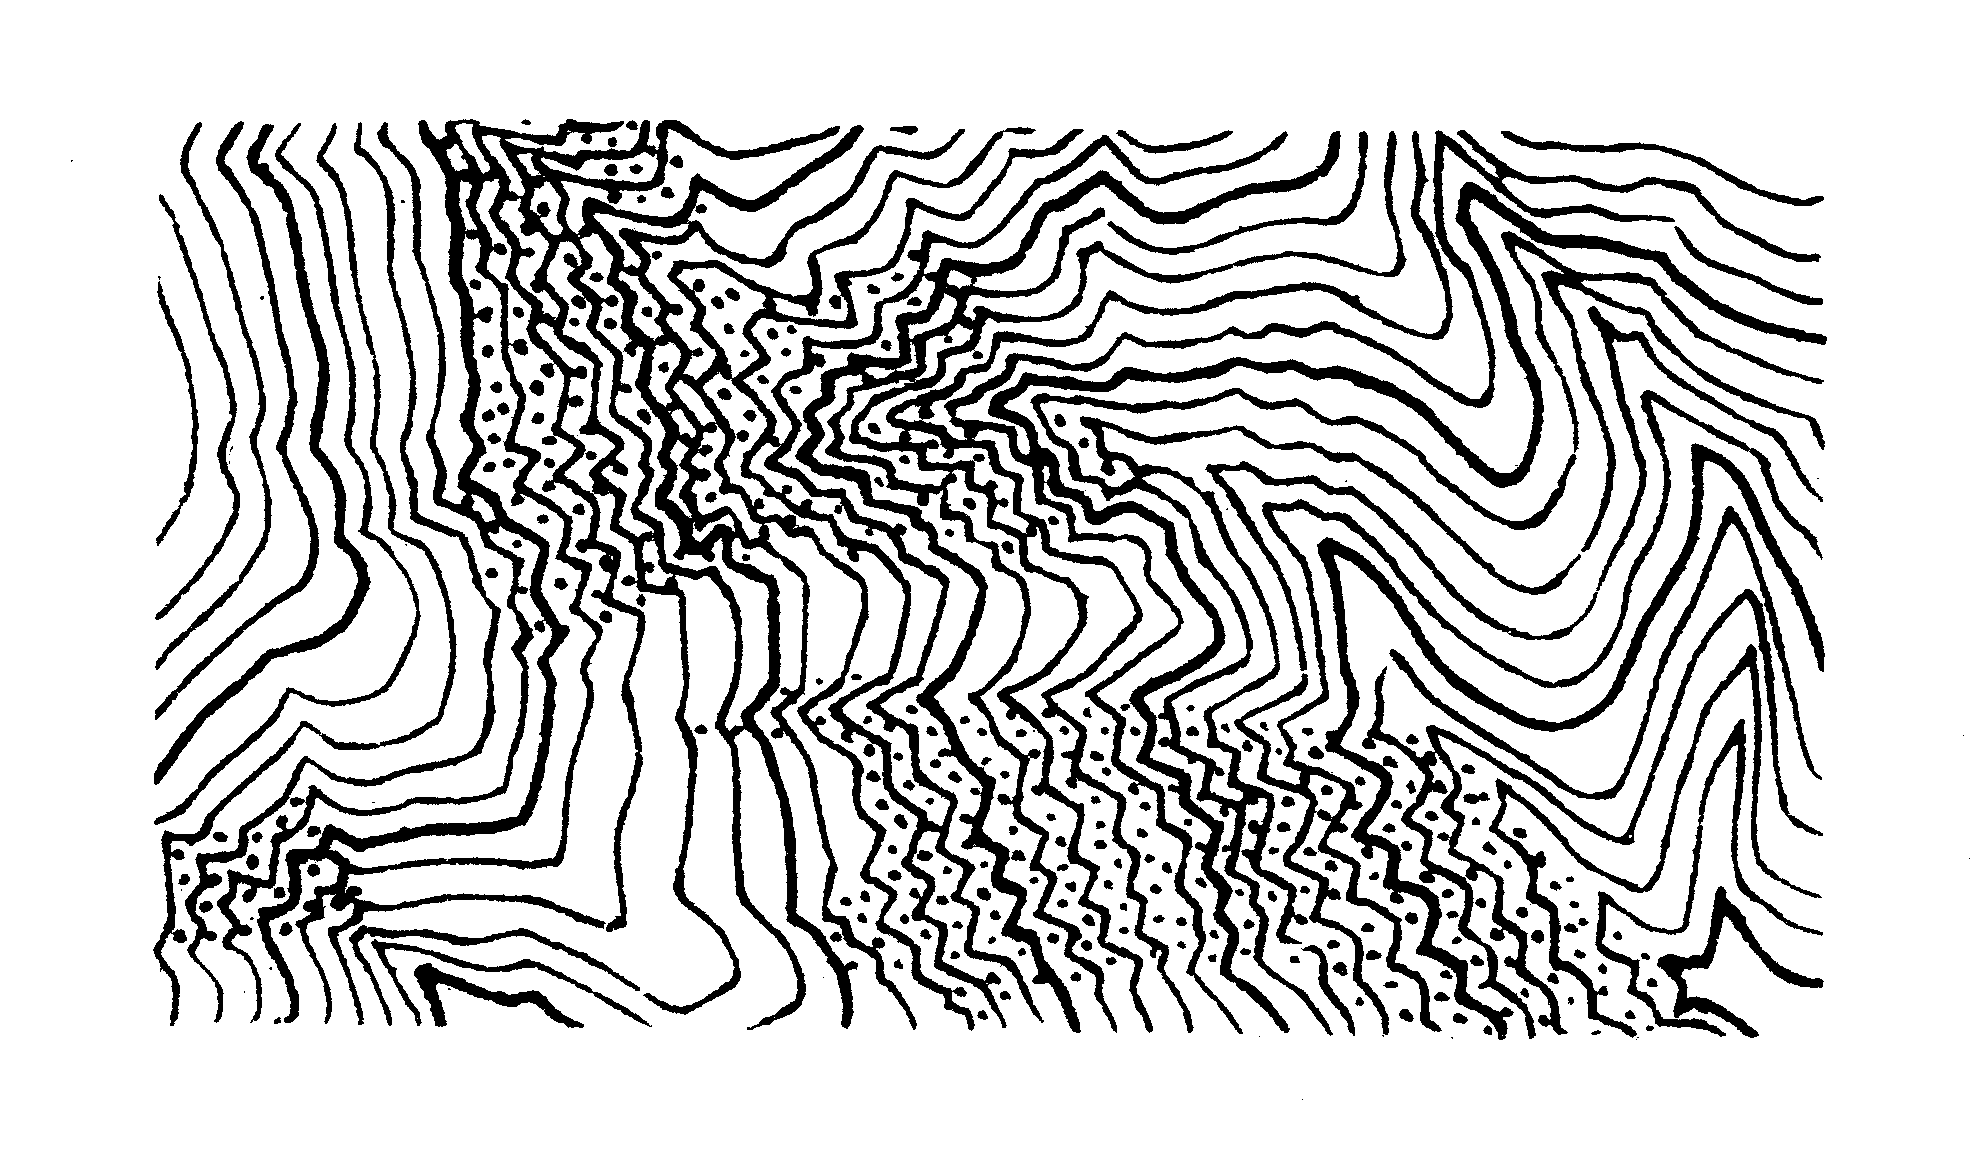 patterns/scan3.png